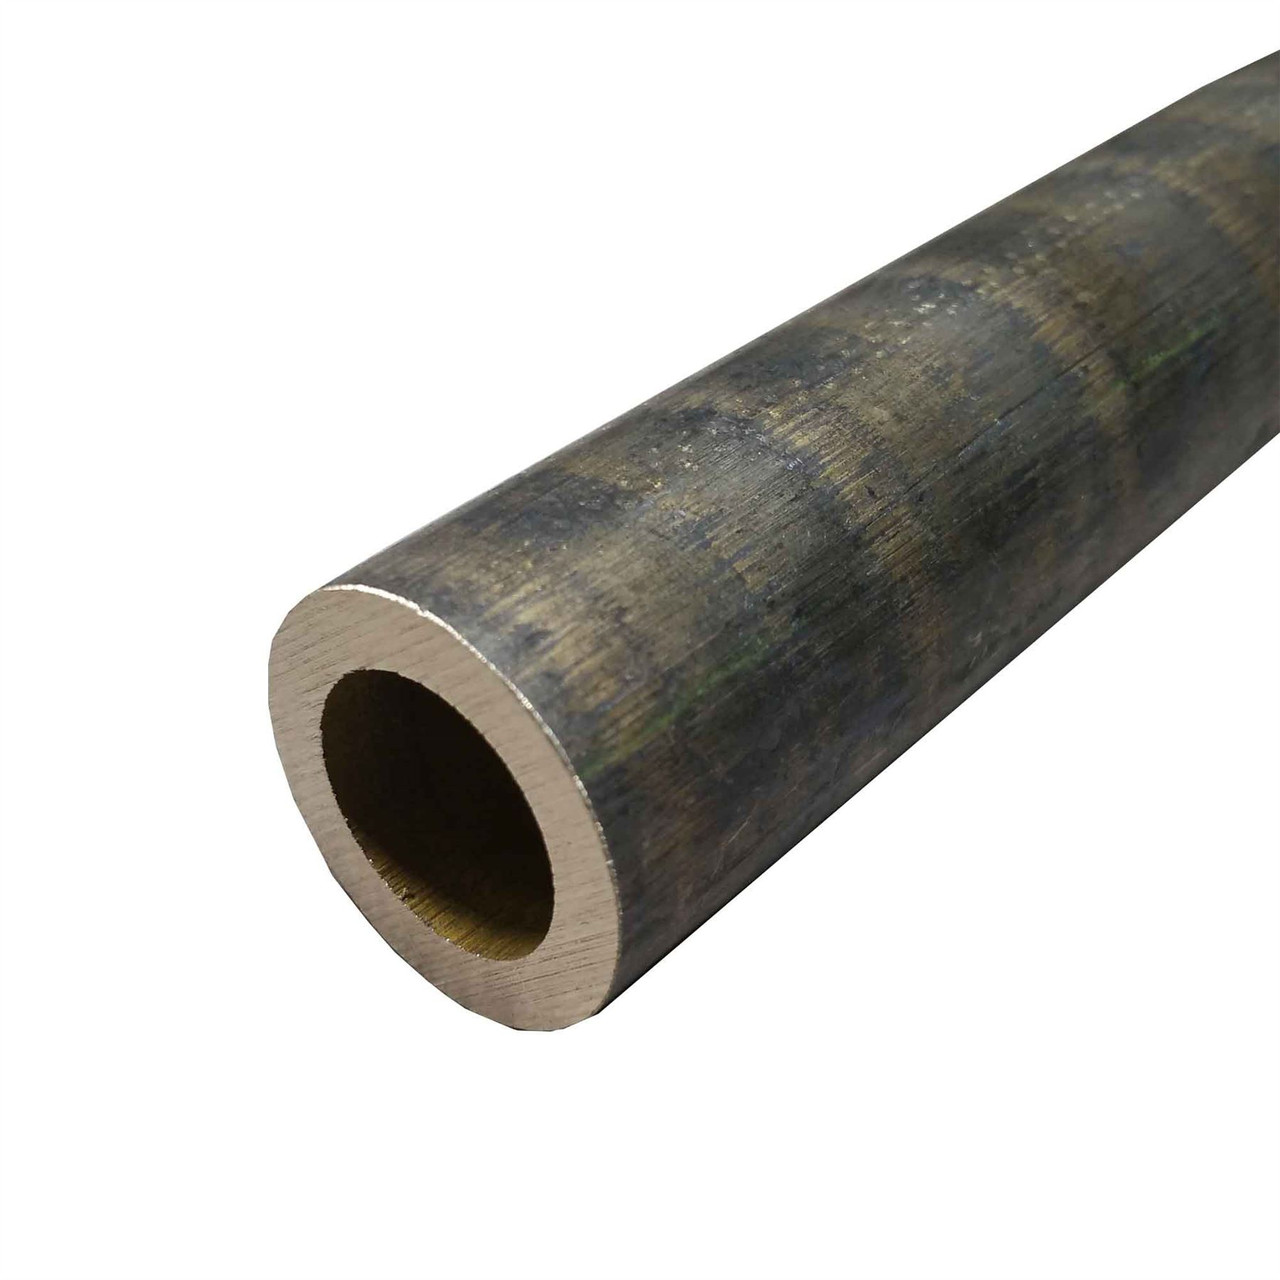 """C630 Bronze Hollow Round Bar, 2"""" ID, 4.5"""" OD, 6 inches long"""